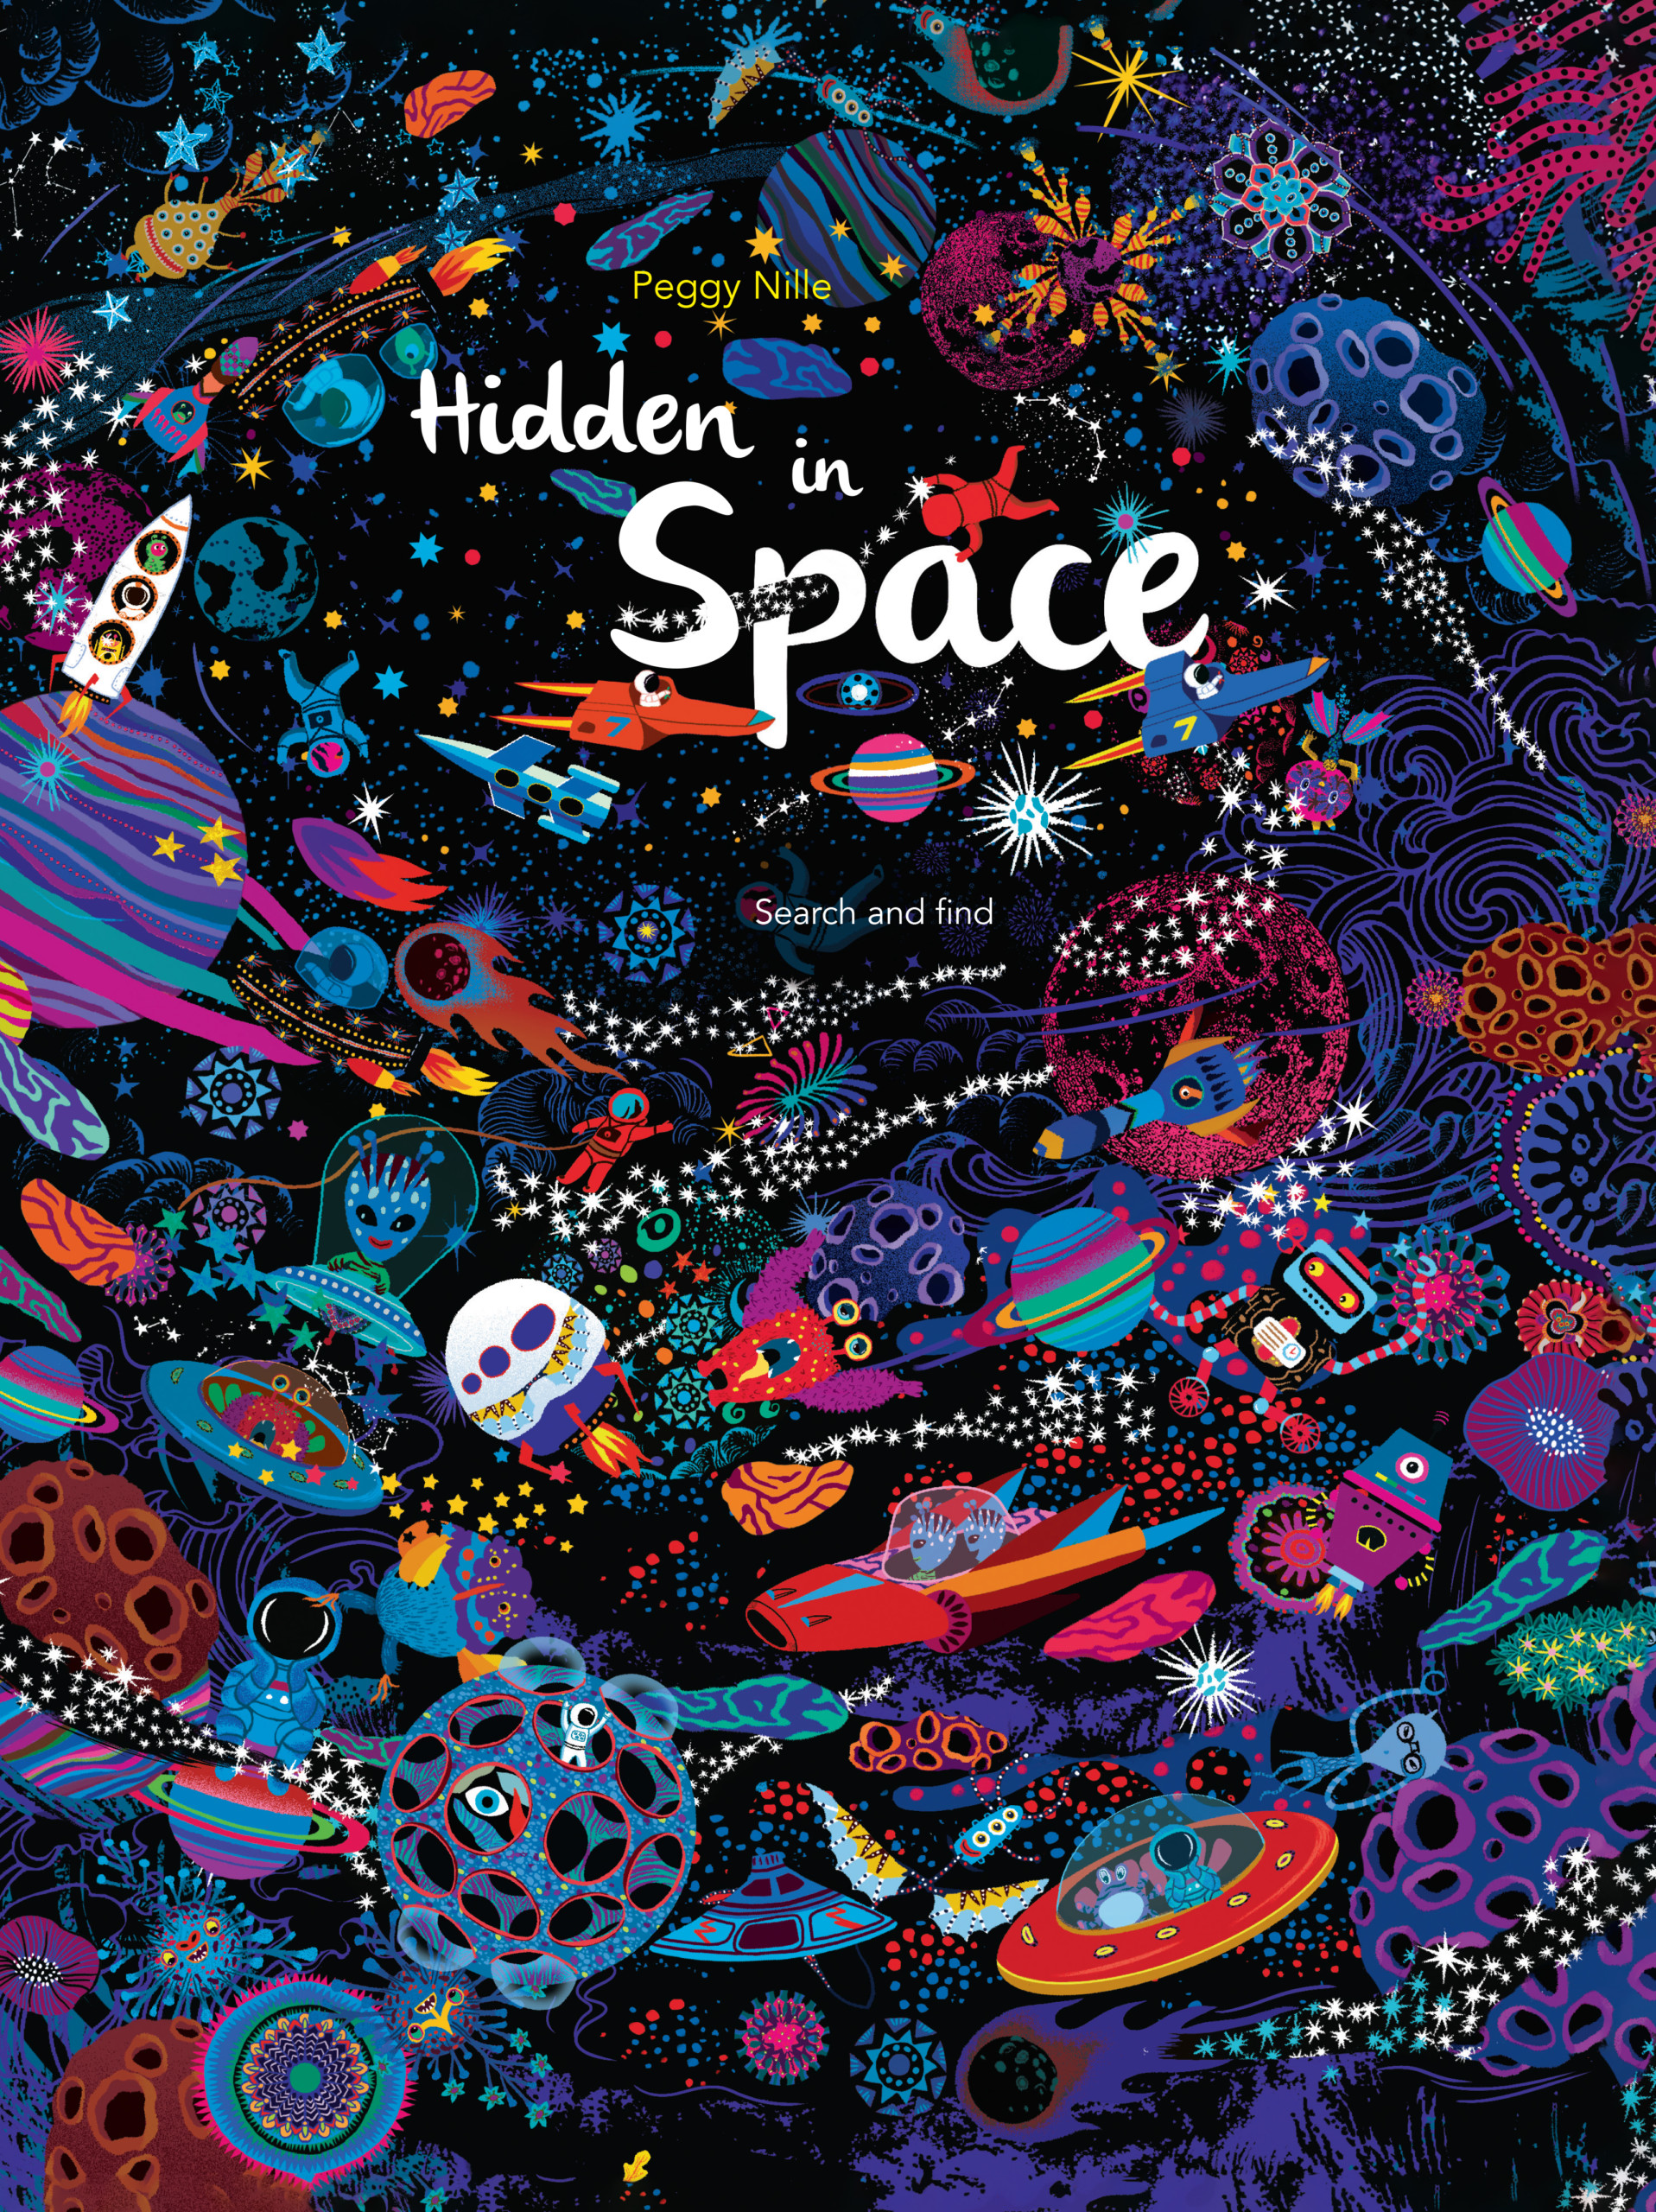 Hidden in Space| by Peggy Nille